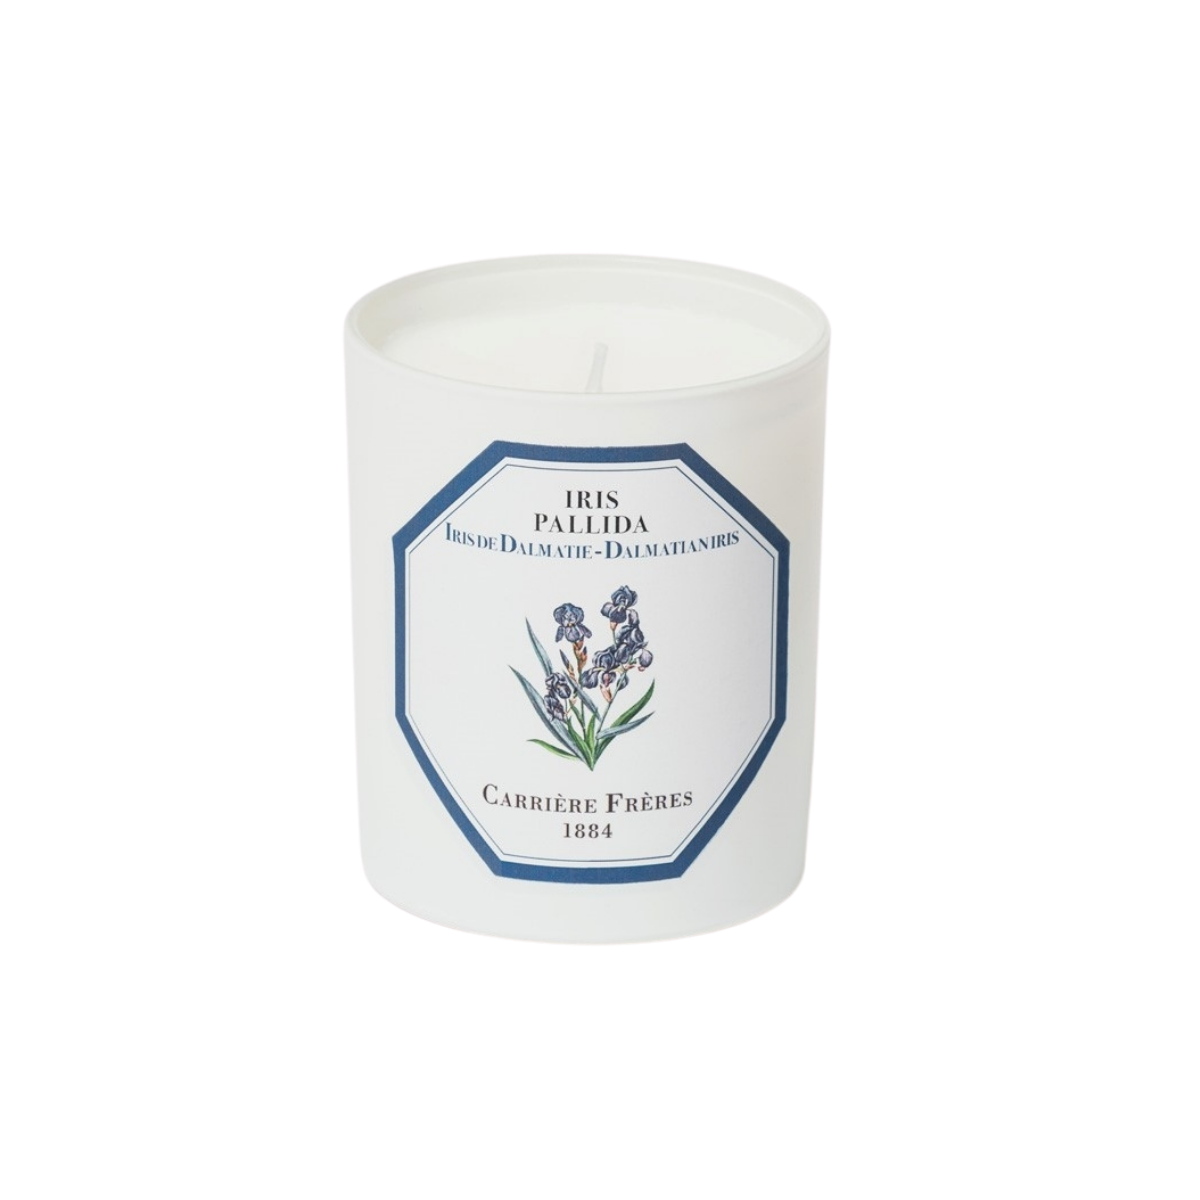 Carriere Freres Iris Candle 185g